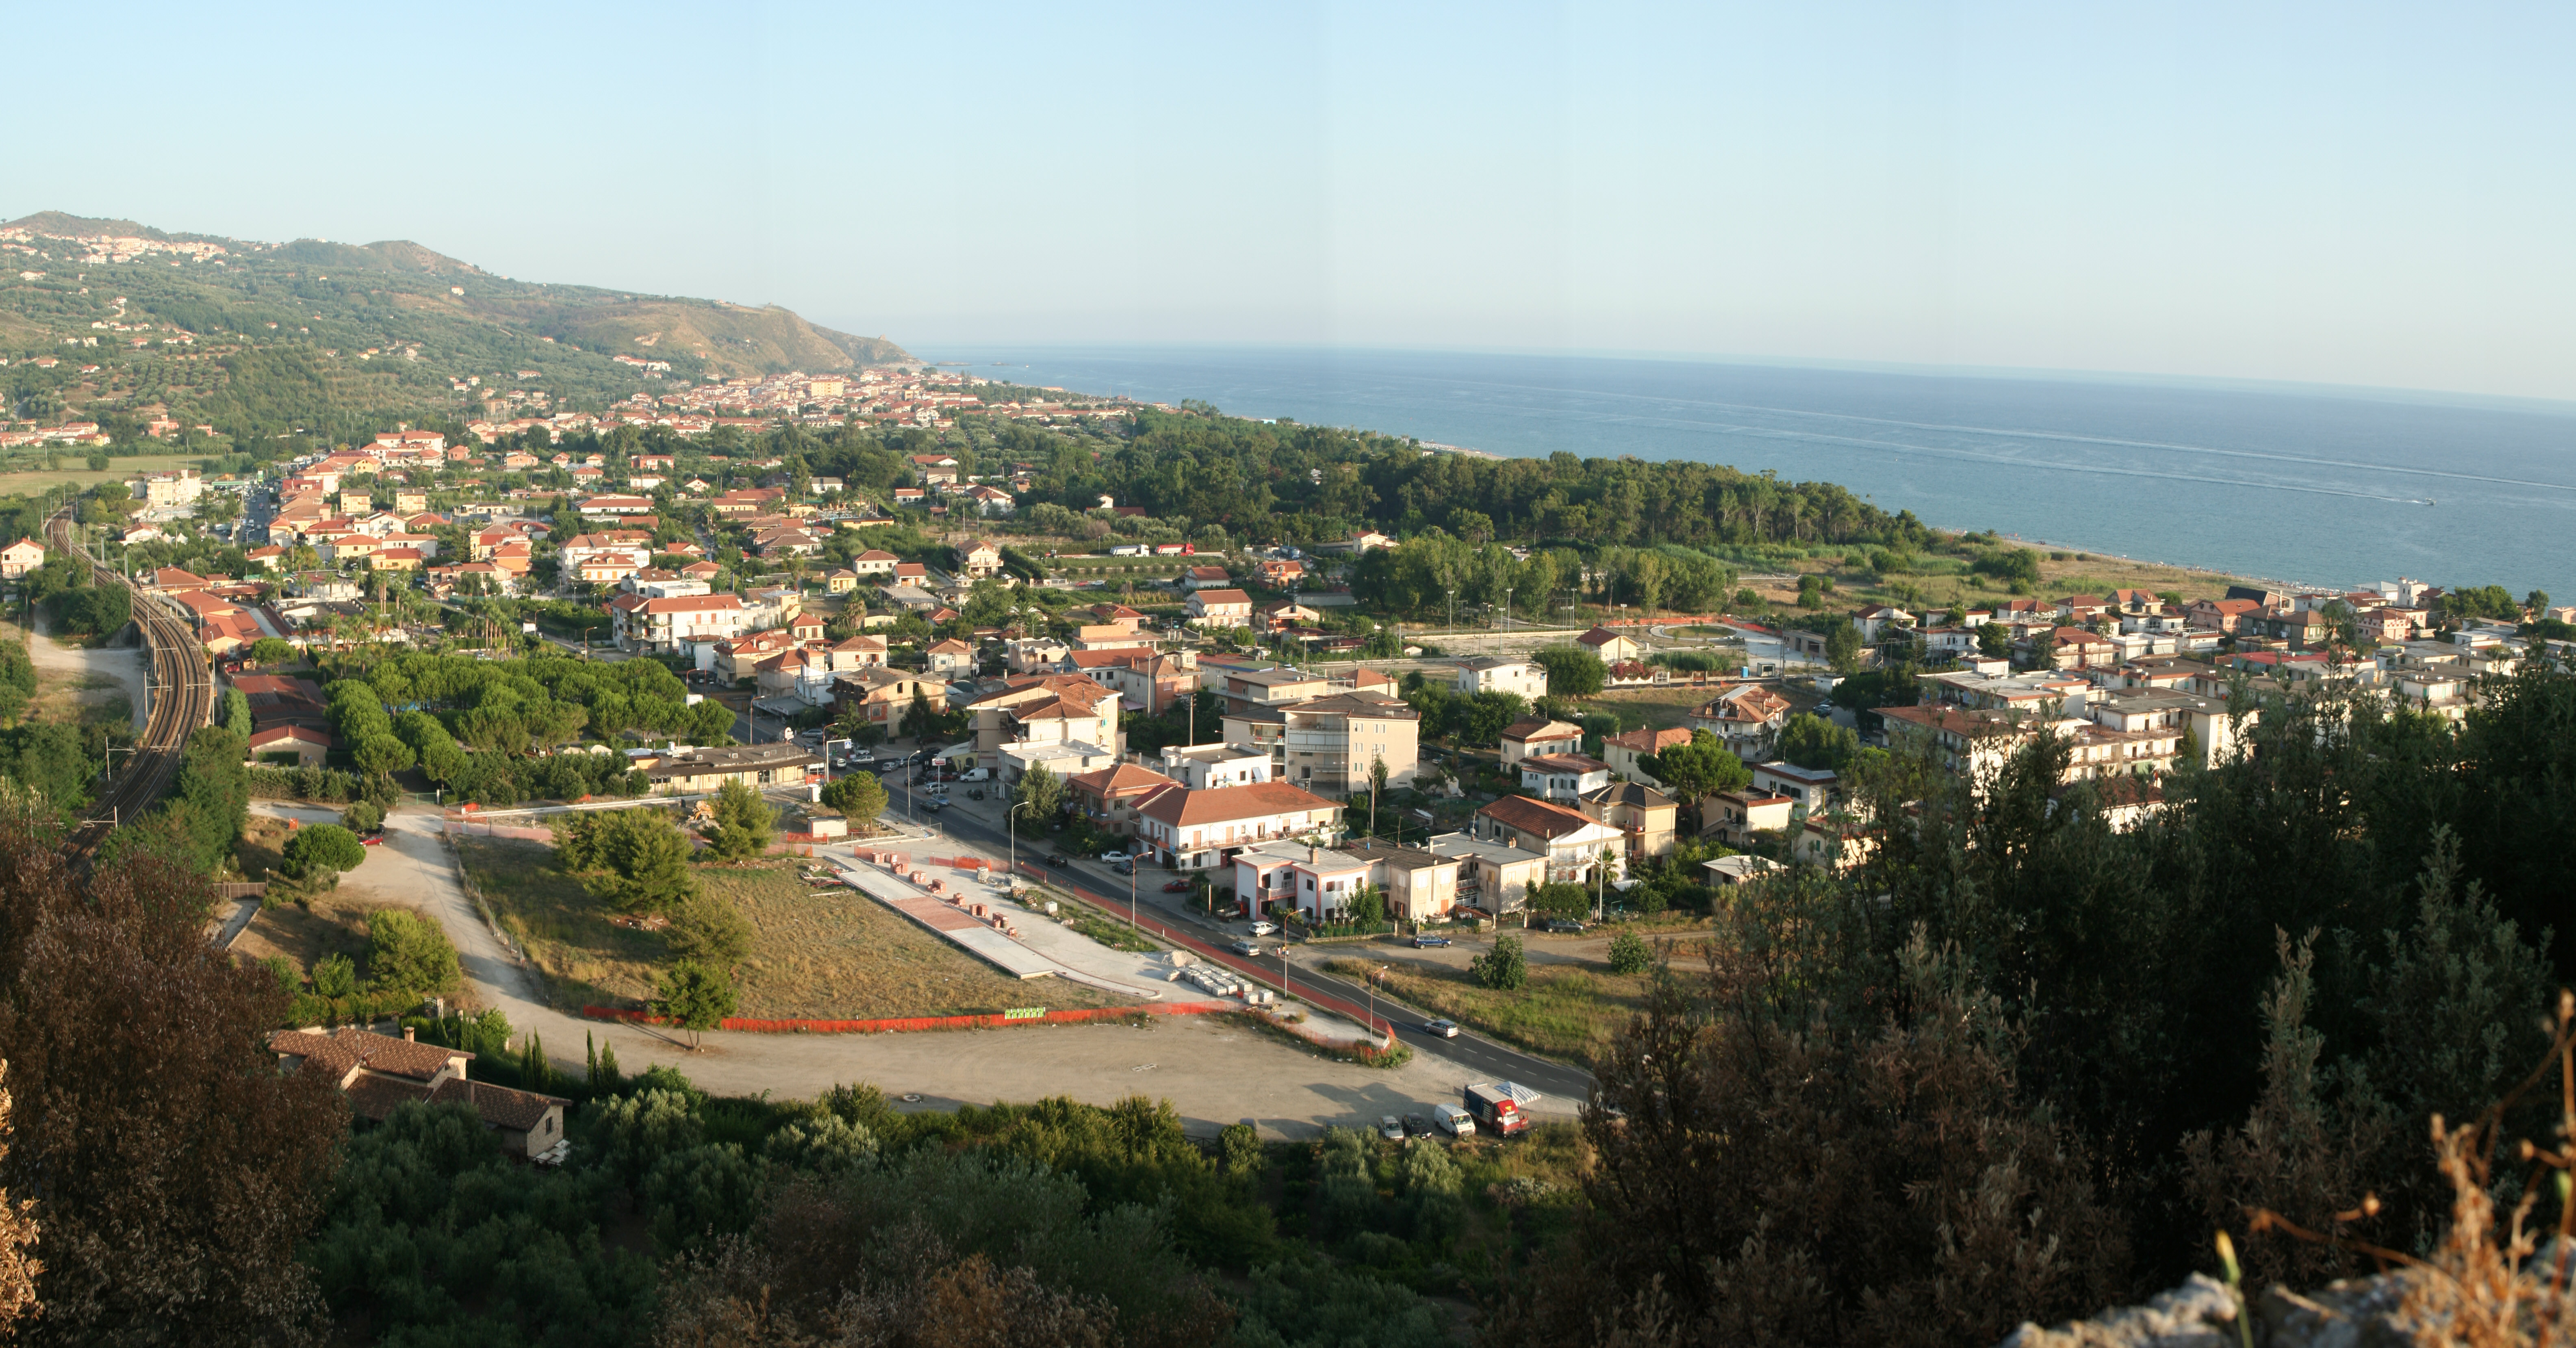 Ascea Italy  City pictures : Marina de Ascea Italy Wikipedia, the free encyclopedia